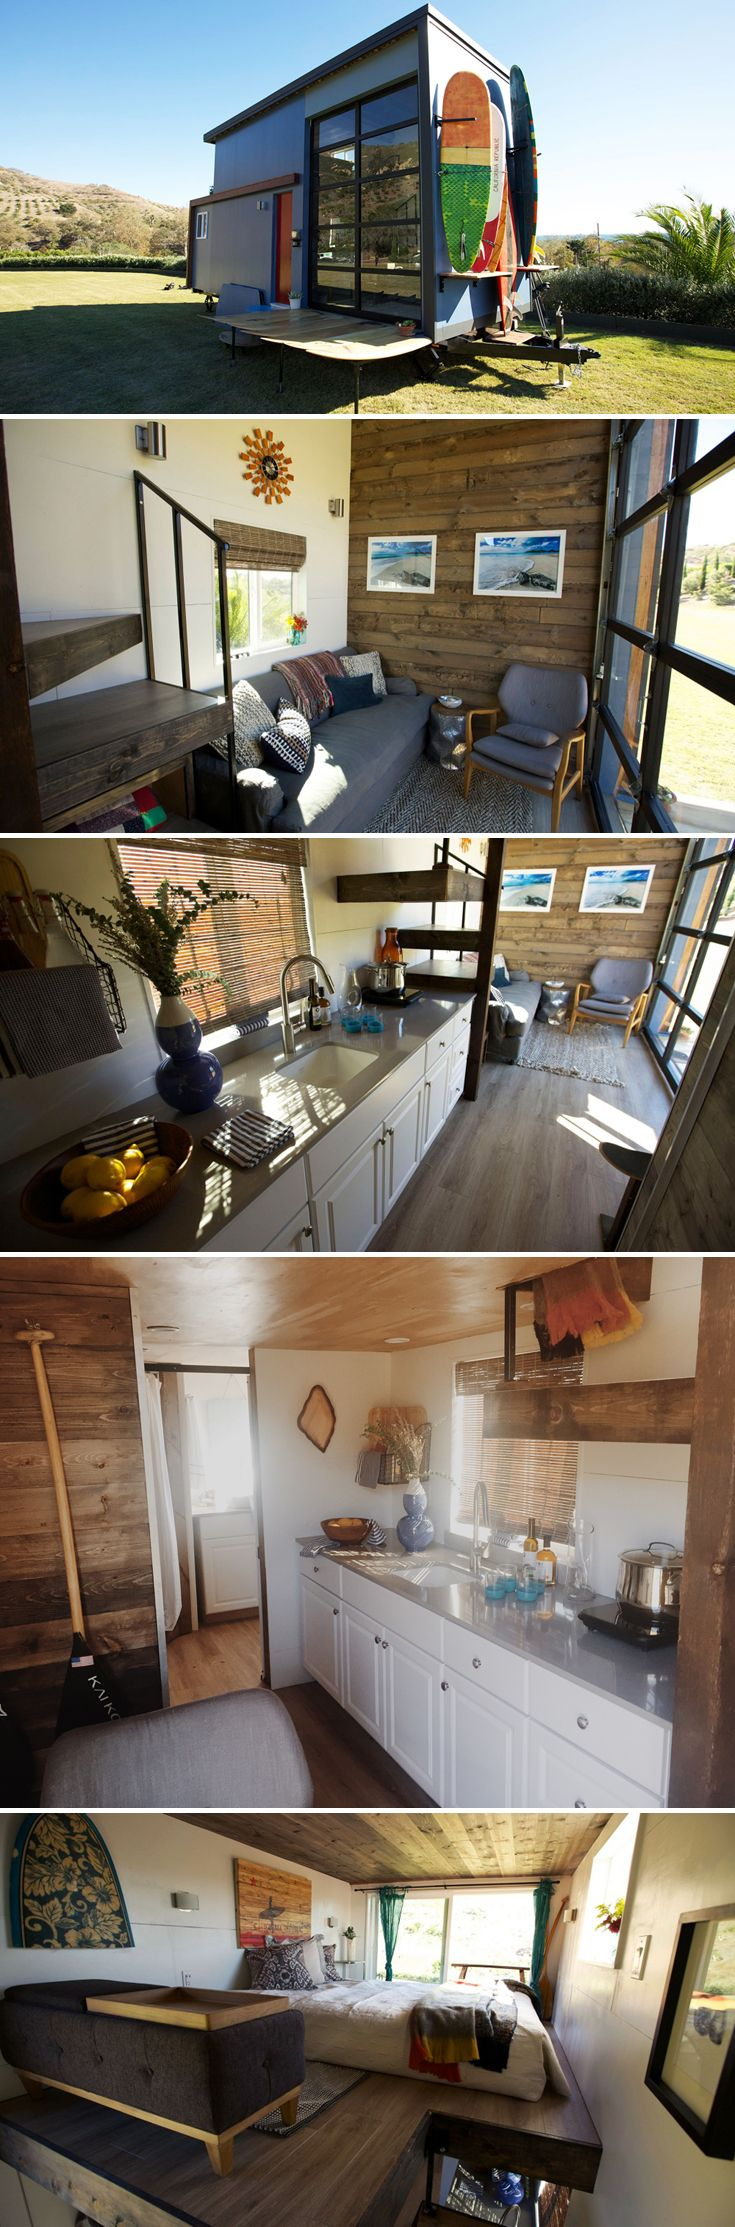 Built as a mobile surf shack for a Santa Barbara couple, the 20-foot tiny home allows them to stay close to the beach where they enjoy surfing and rowing.